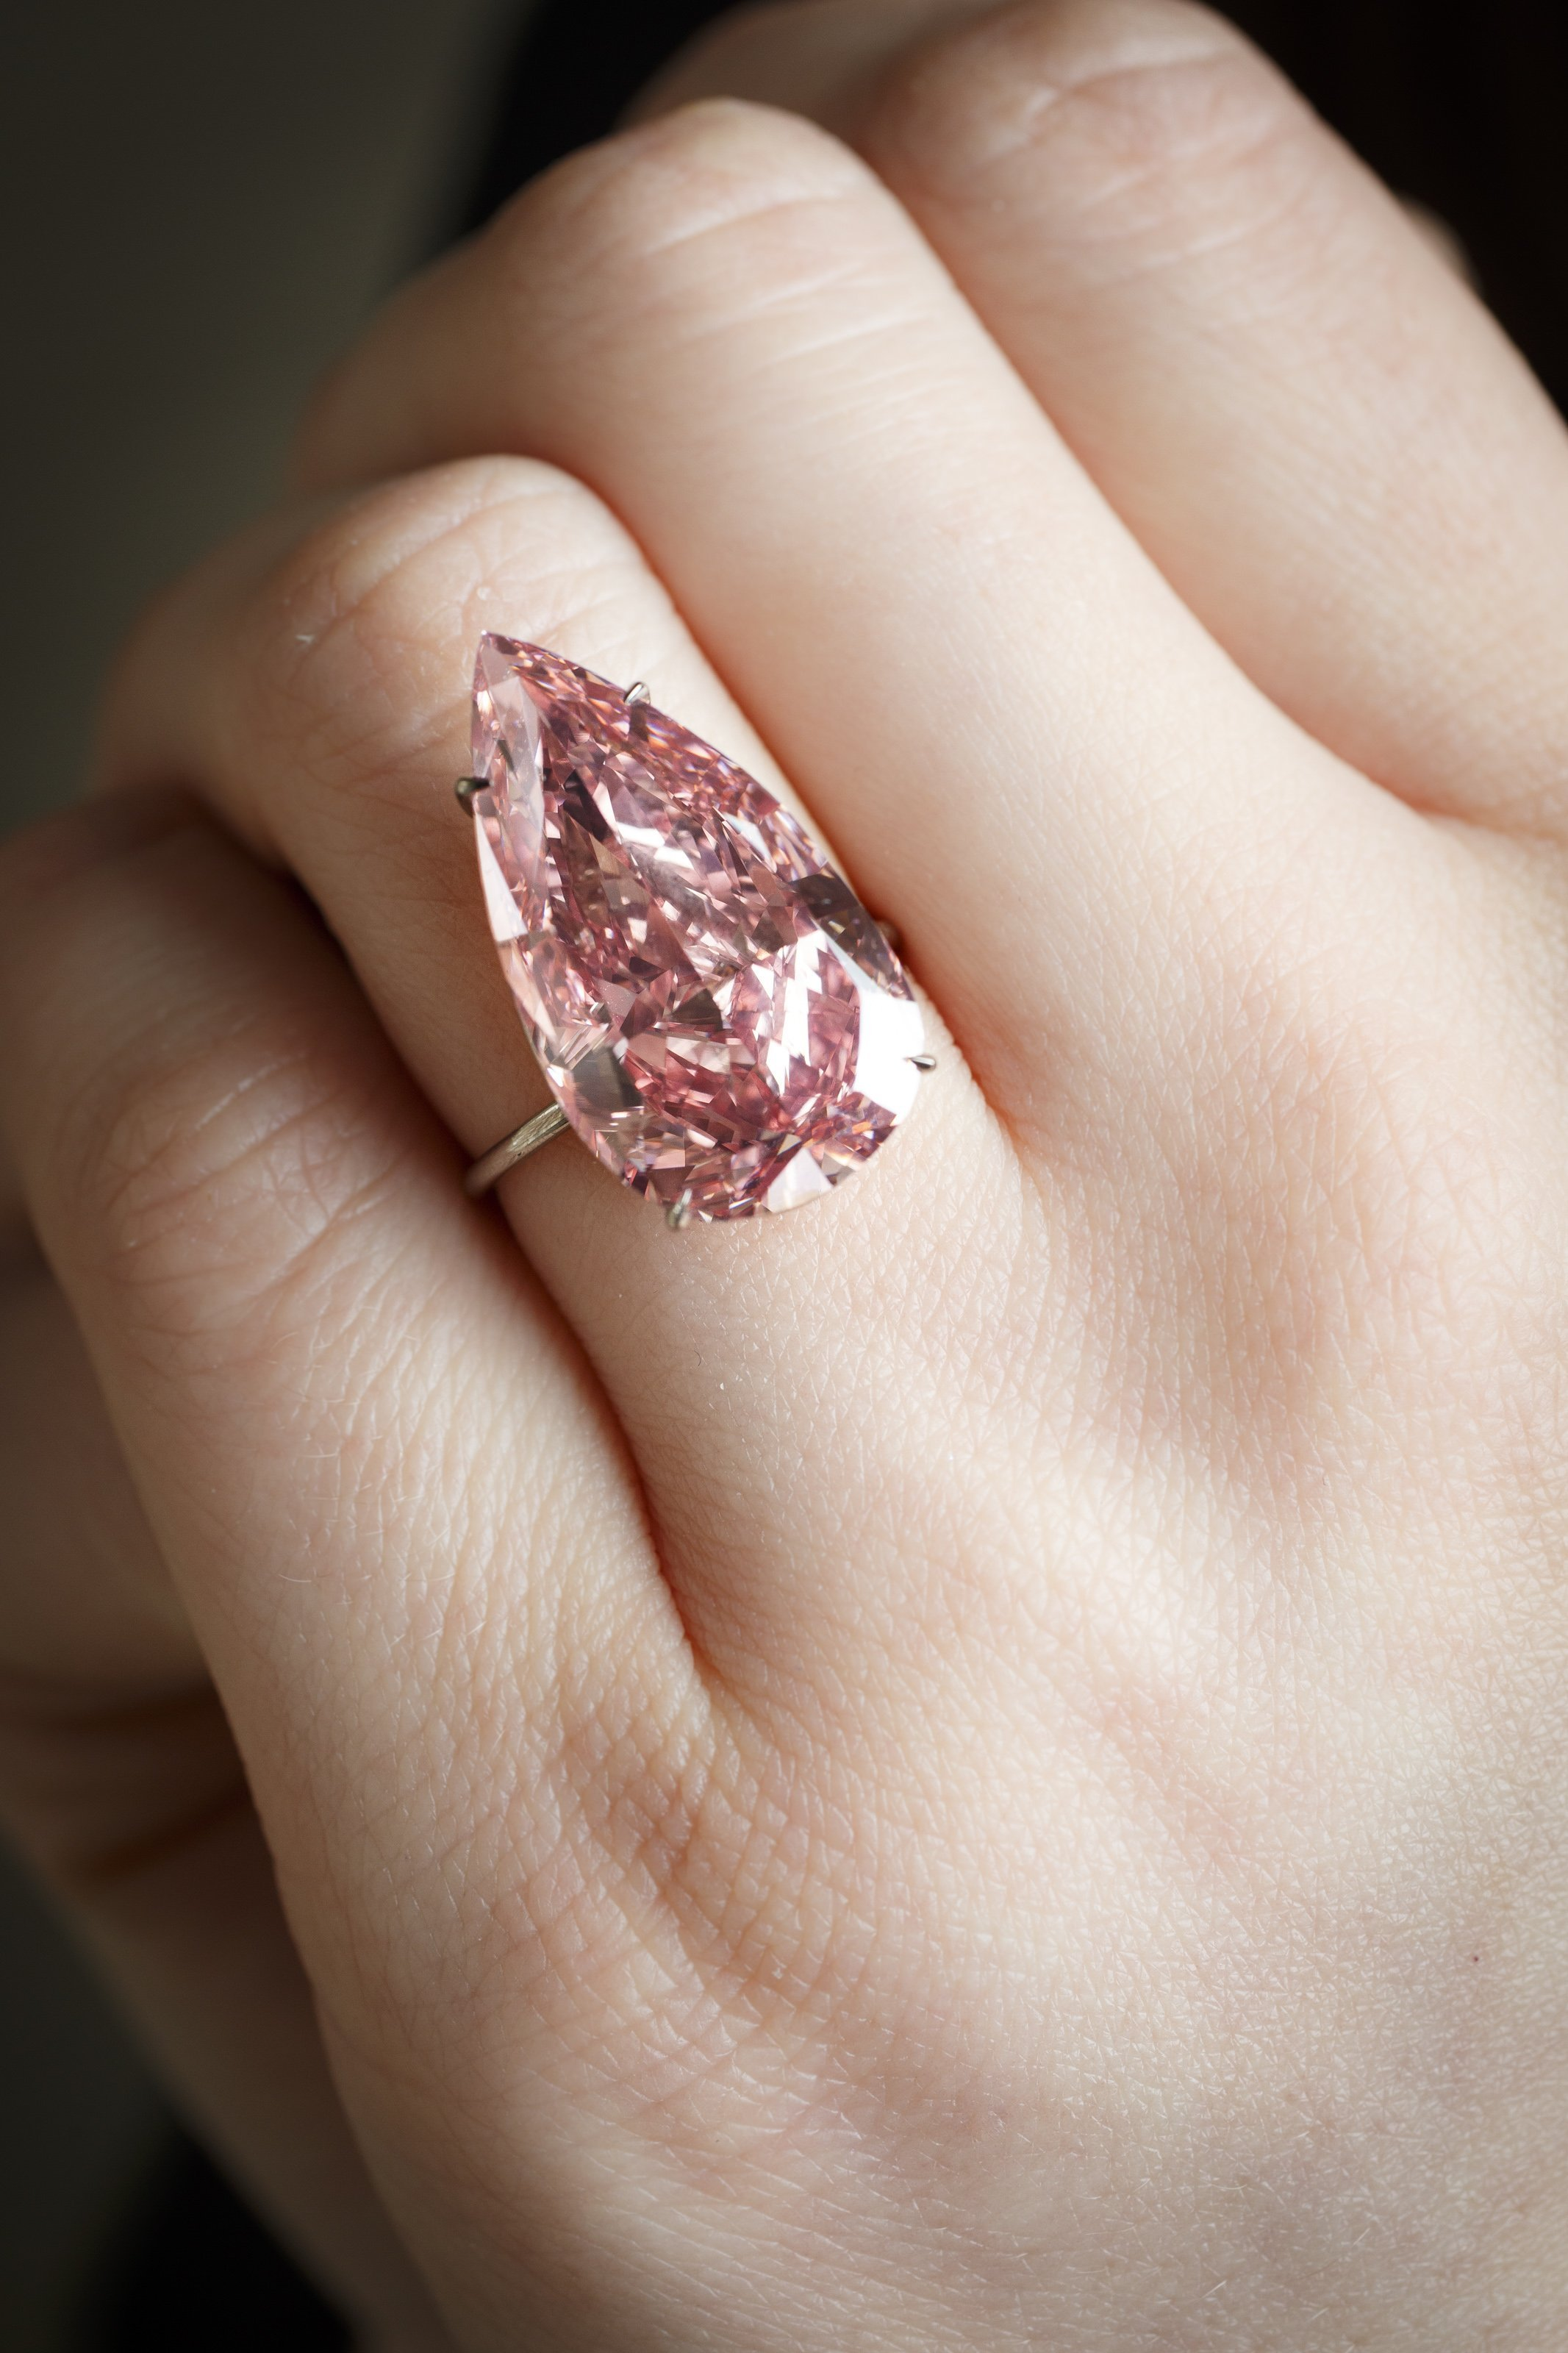 An extremely rare 15.38 carat pear-shaped pink diamond -- called the 'Unique Pink' -- sold for $31.6 million at Sotheby's in Geneva on Tuesday (May 17, 2016).